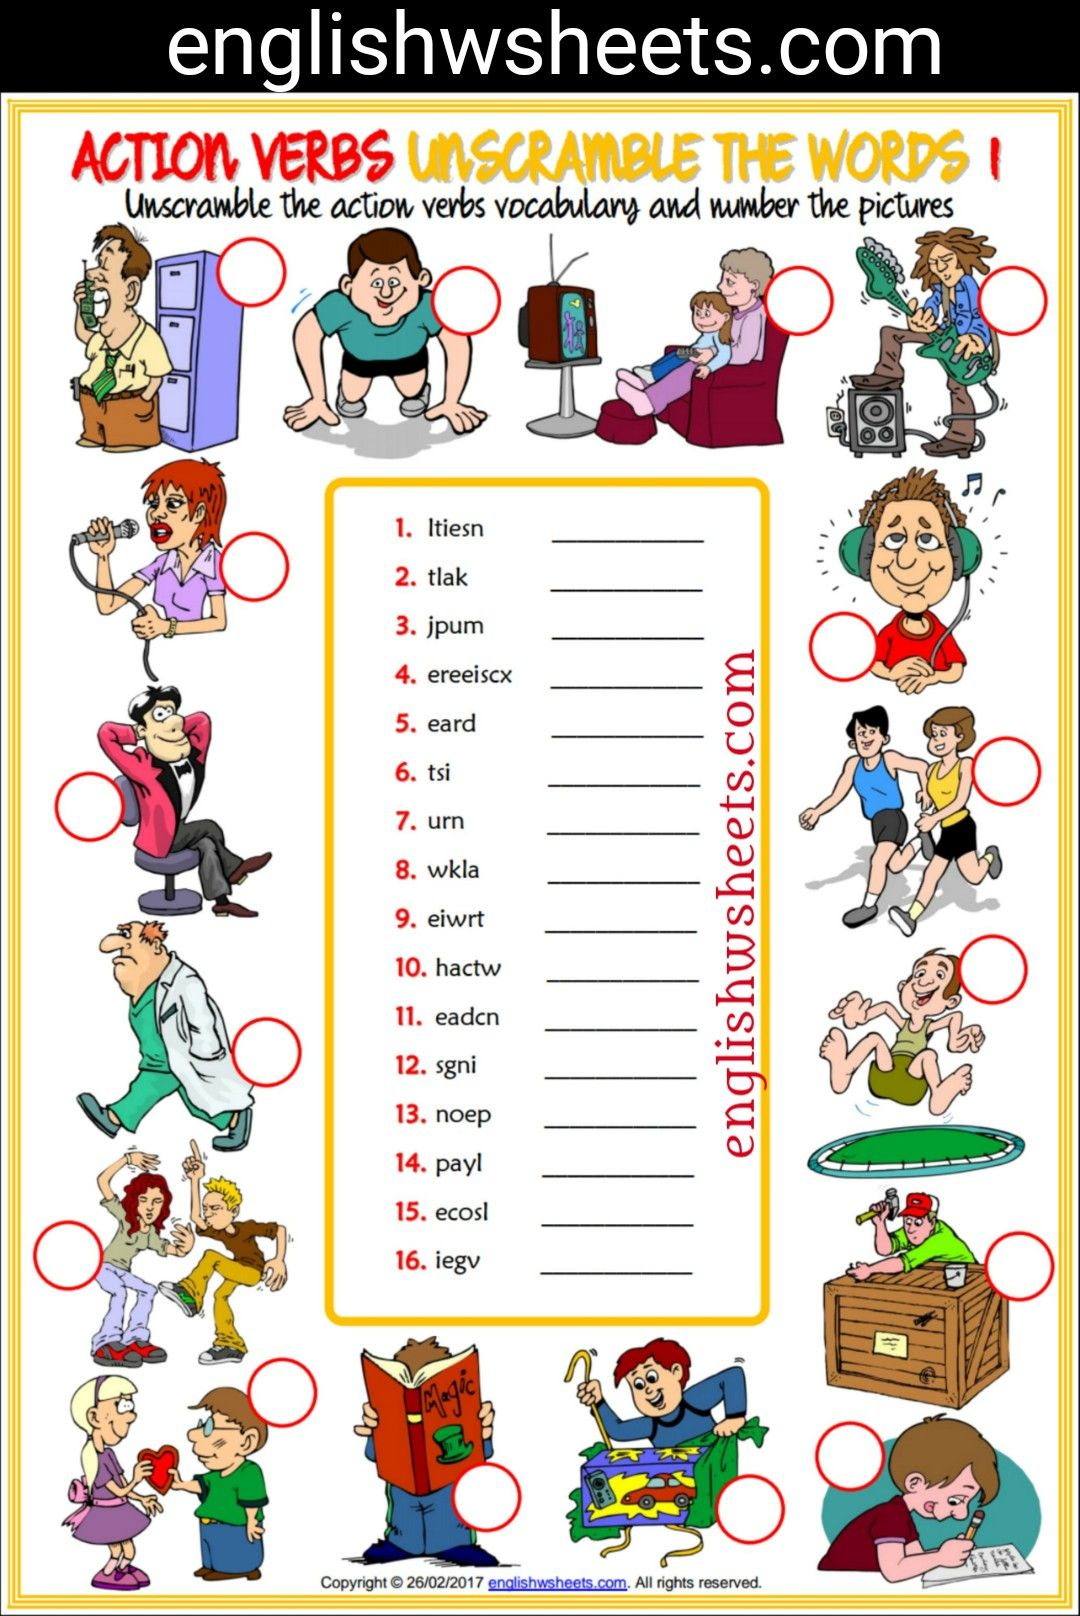 Action Verbs Esl Printable Unscramble The Words Worksheets